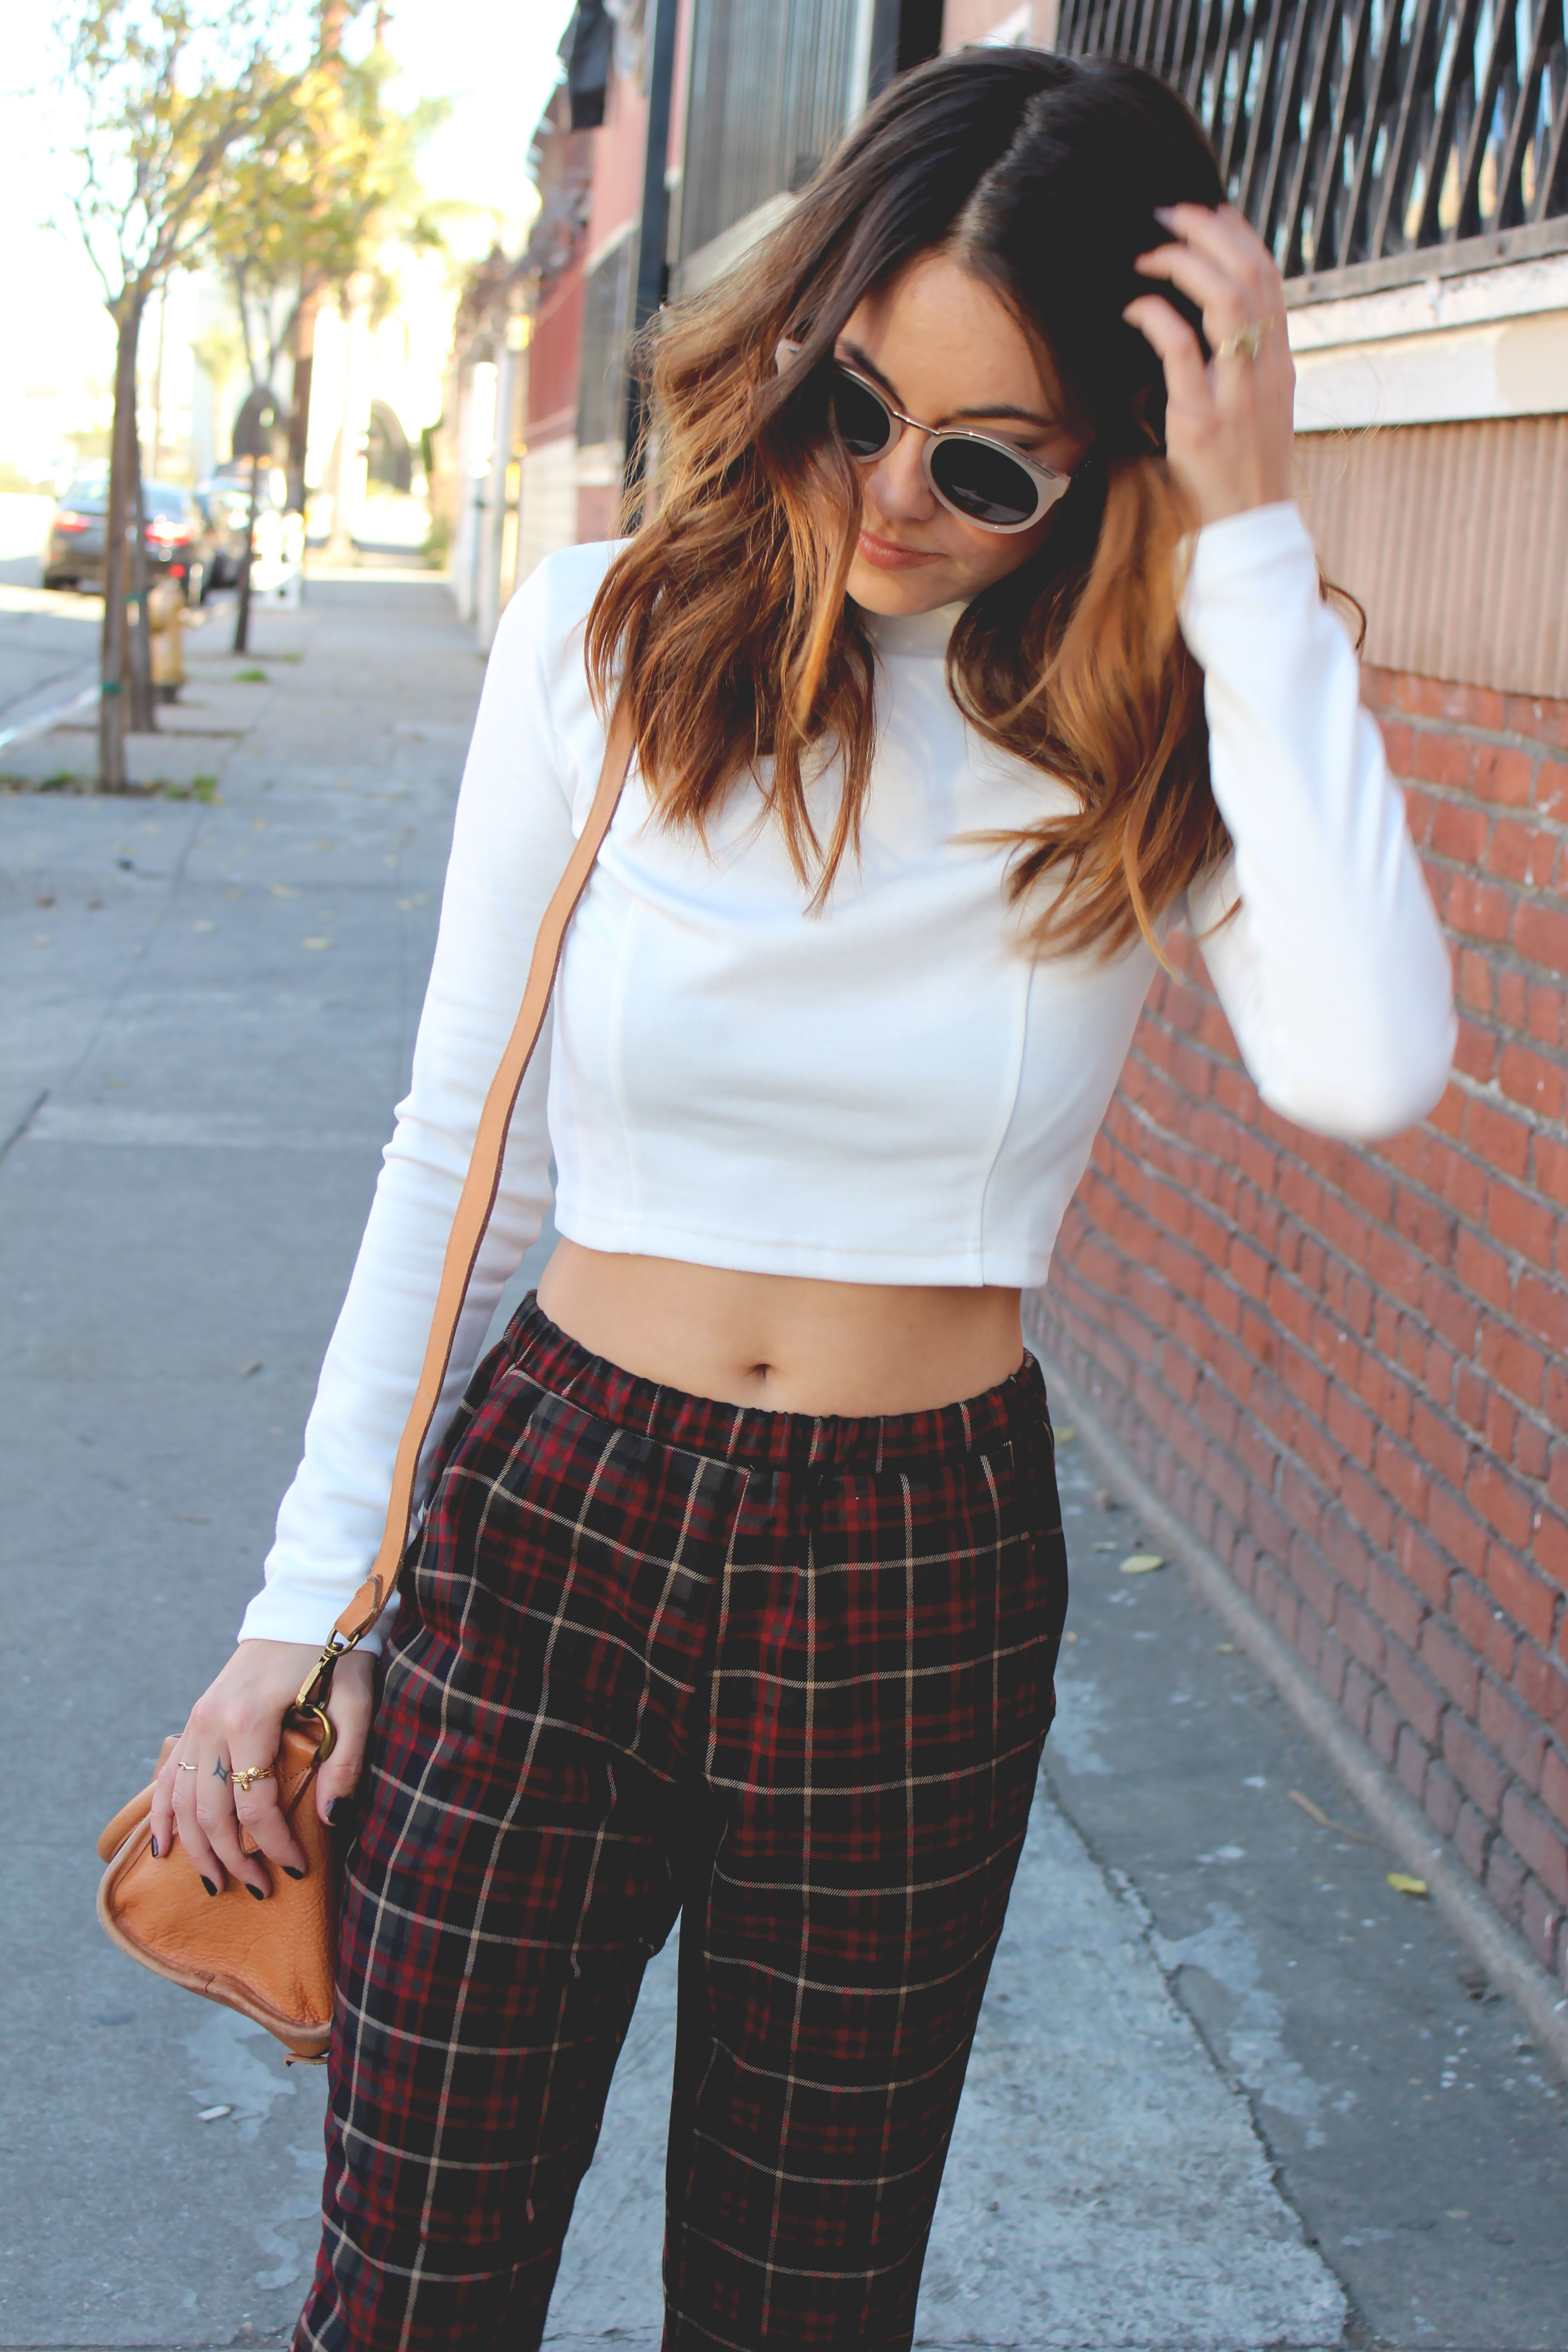 Cropped plaid pants outfit, street fashion, capri pants, casual wear, polo neck, crop top